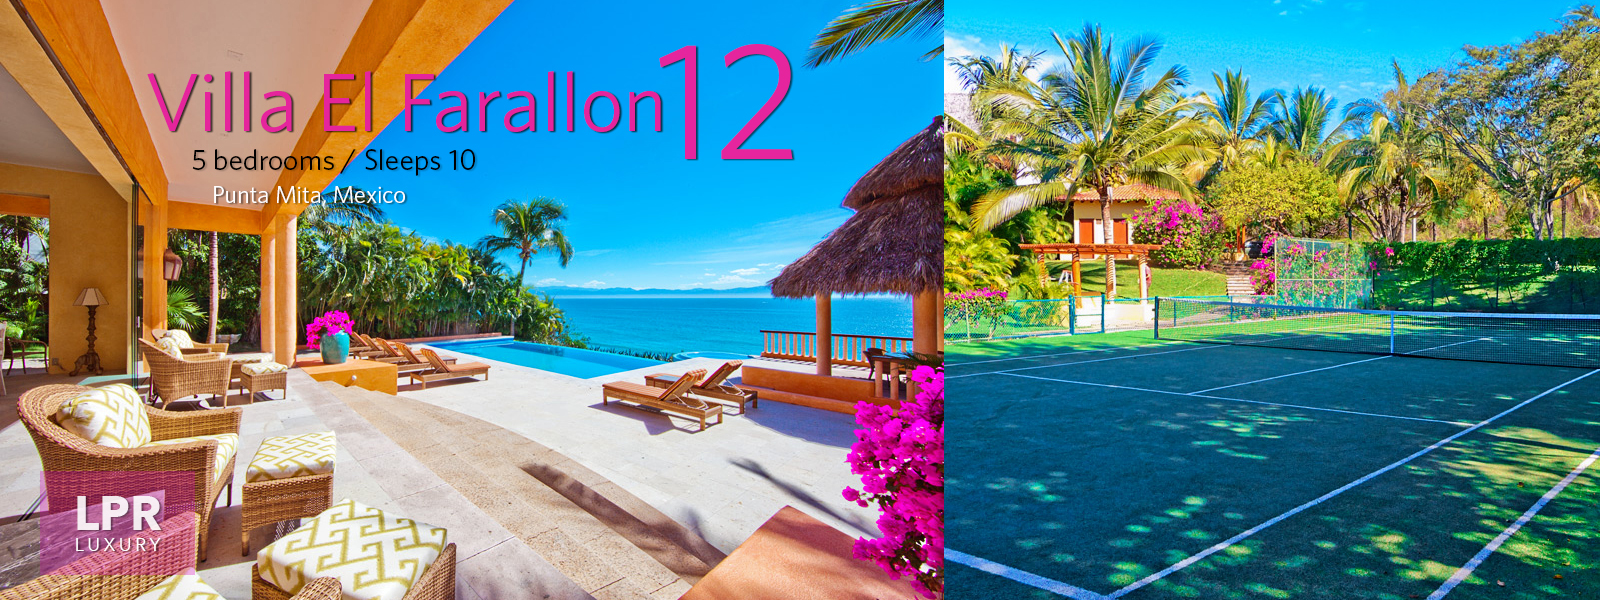 Villa El Farallon 12 - Punta de Mita Mexico Real Estate and Vacation Rentals